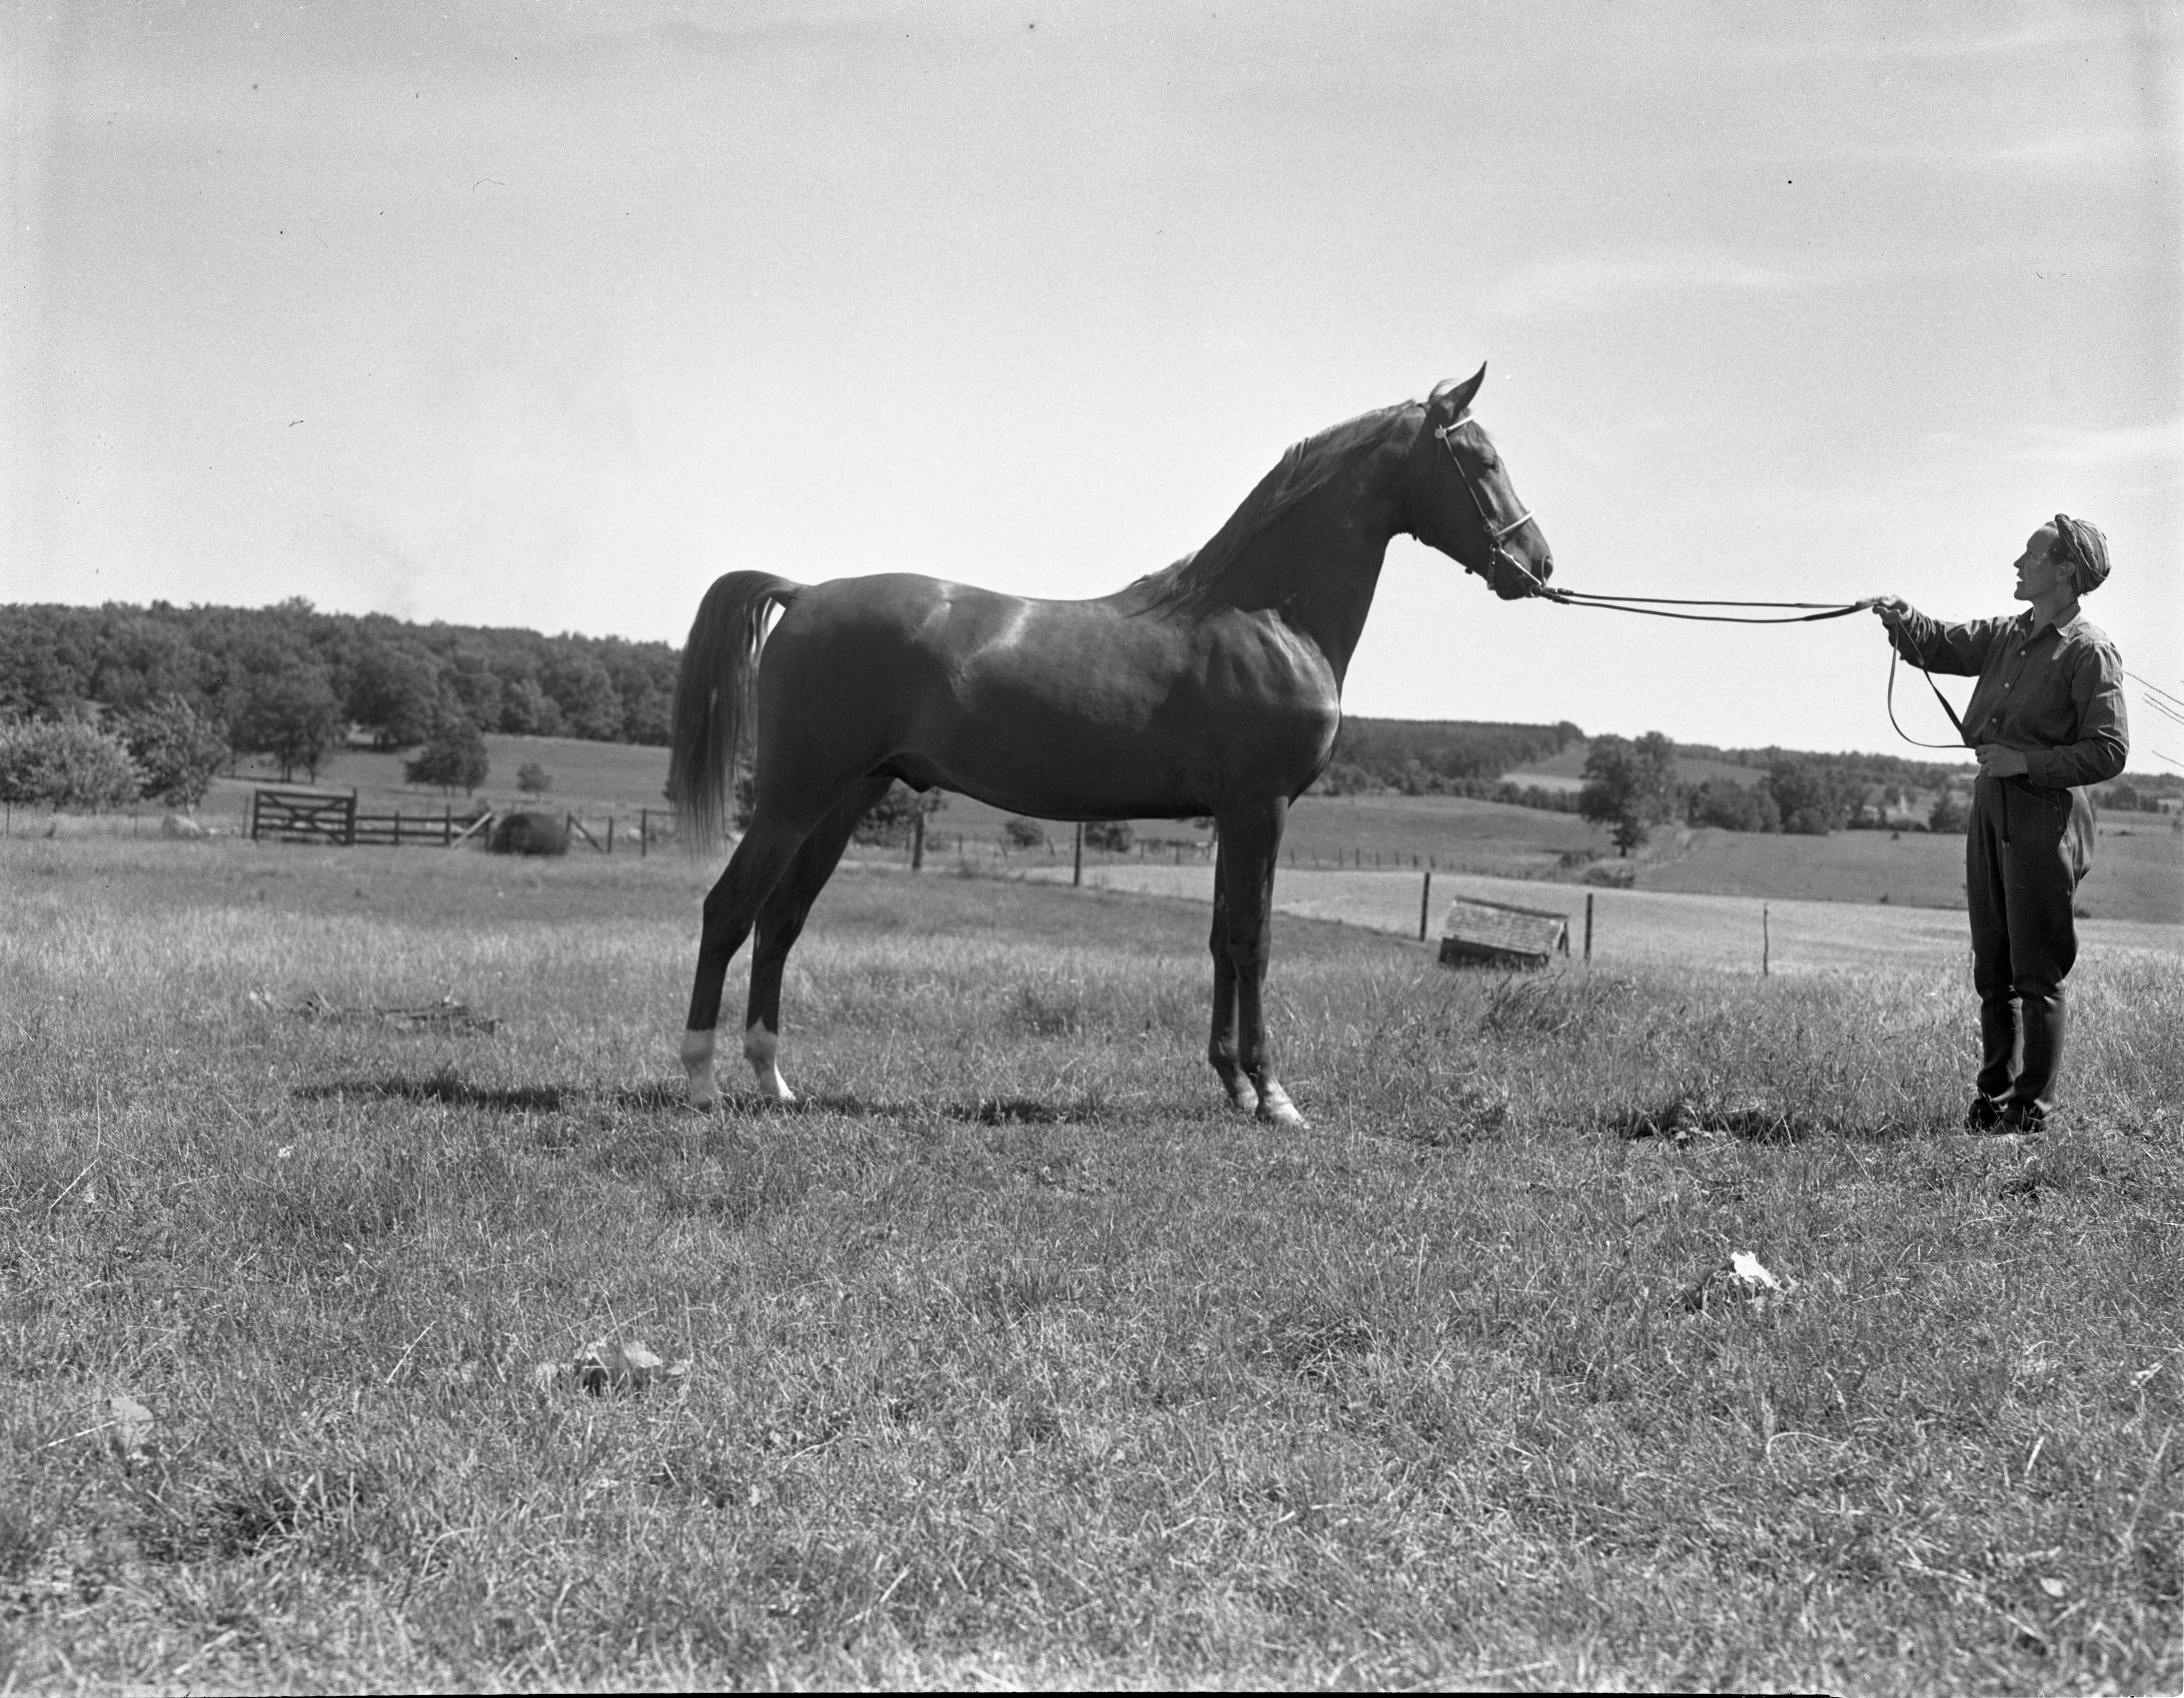 Dr. Theodore Lane's Horse, 1940 image